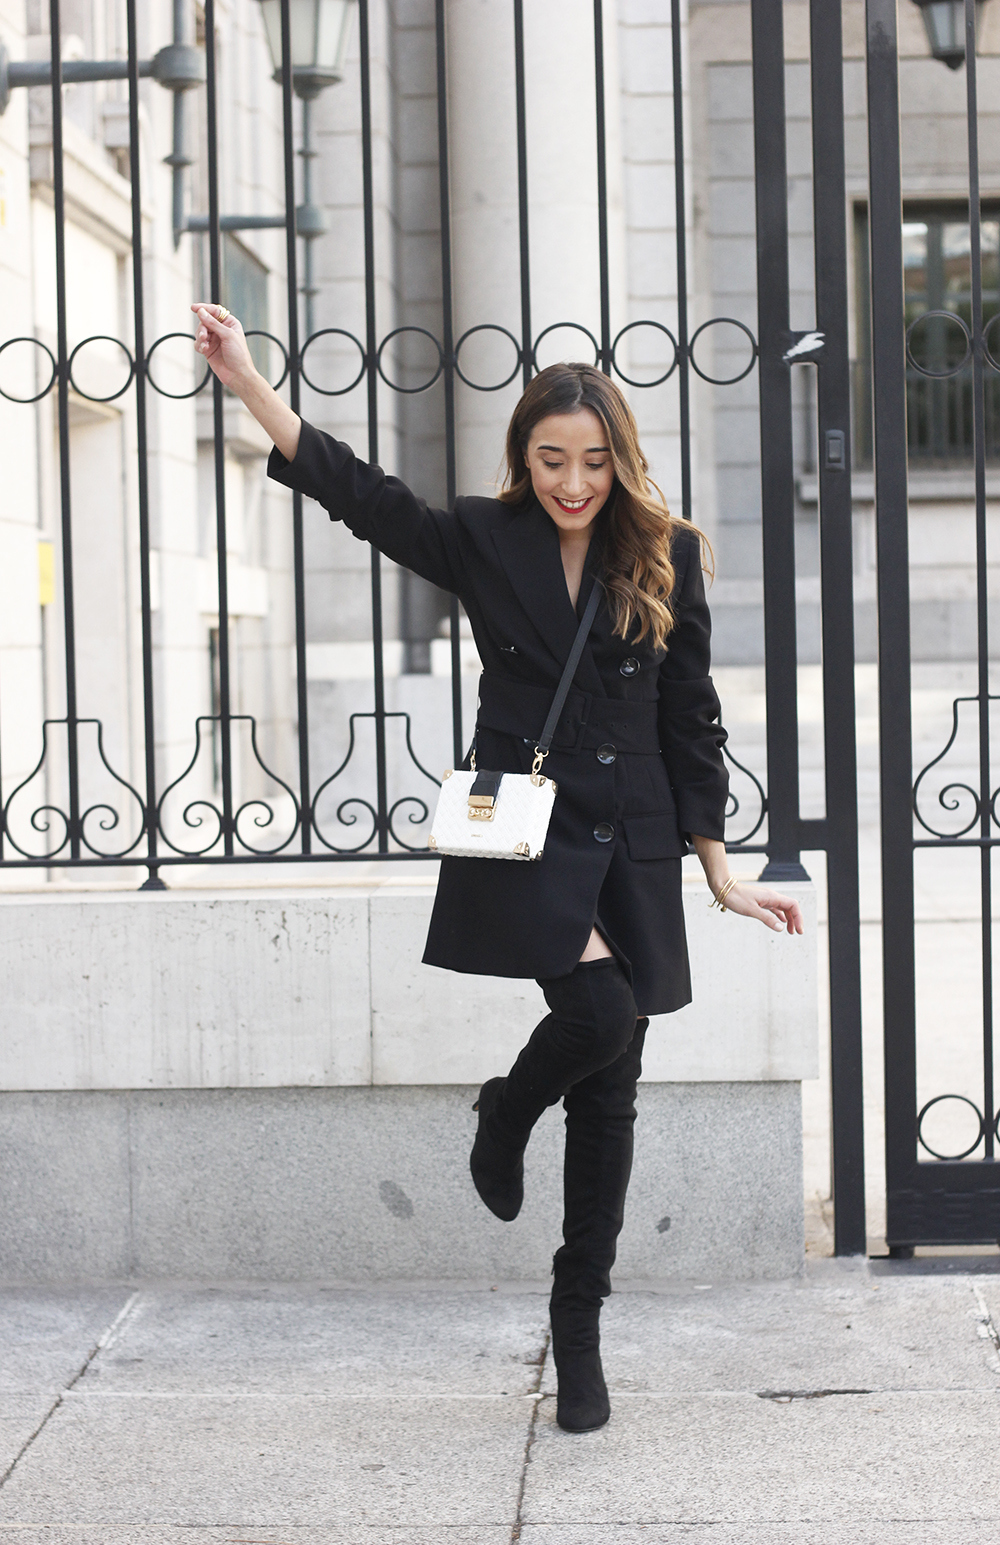 Black Blazer dress over the knee boots outfit uterqüe fashion style outfit autumn01